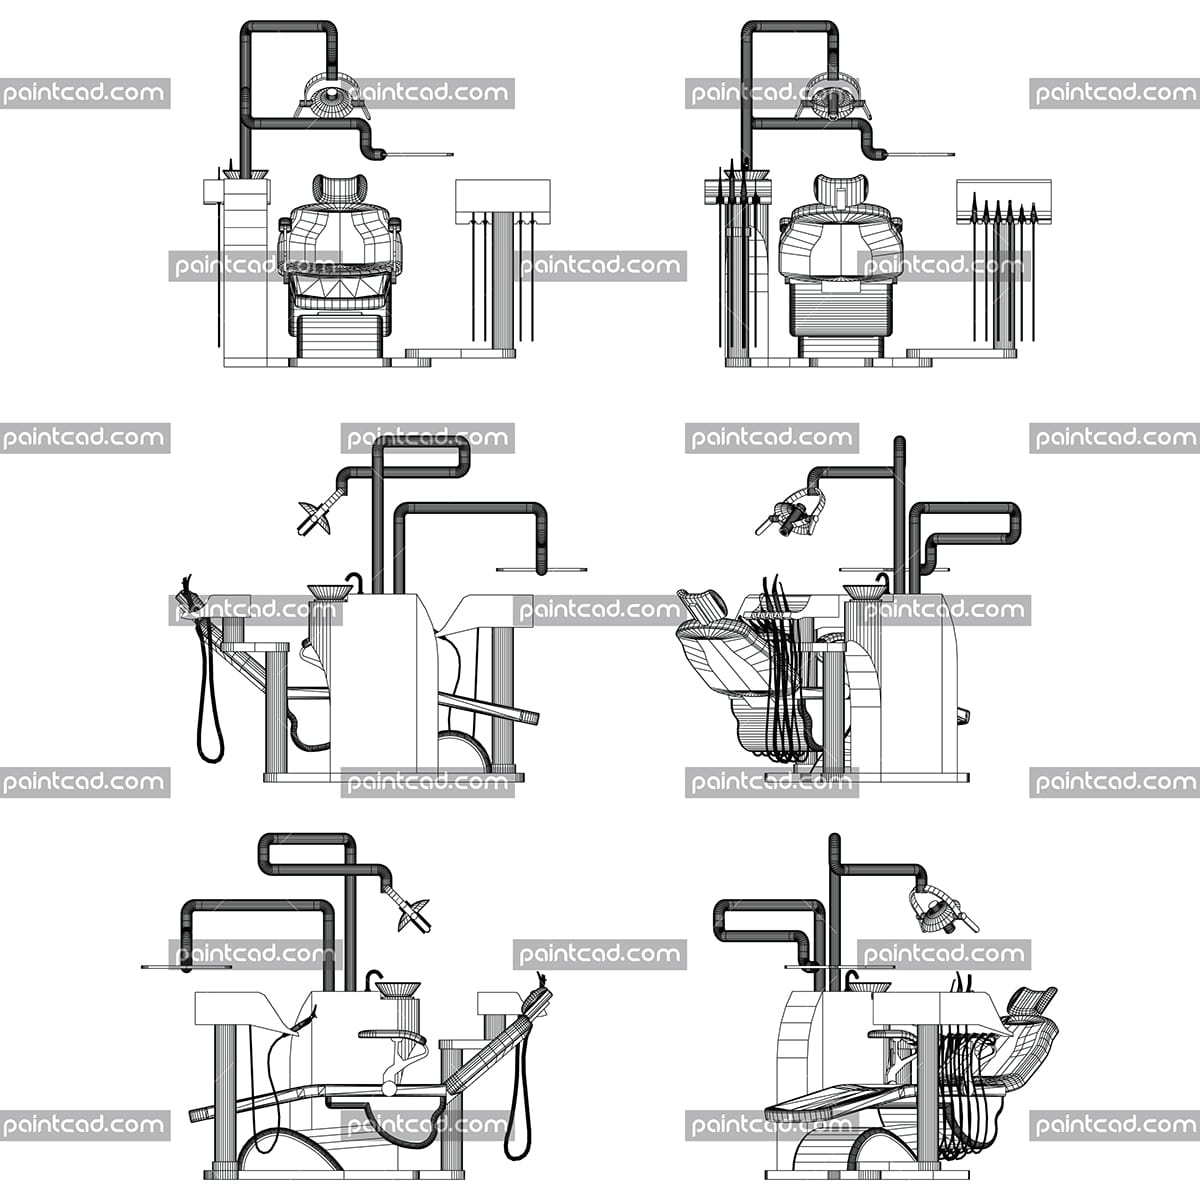 Vector drawing of polygonal dentist chair. Front, rear, side and axonometric view. Three-dimensional graphic design. Isolated objects on white background. Diagram suitable for illustrative purposes and advertising.